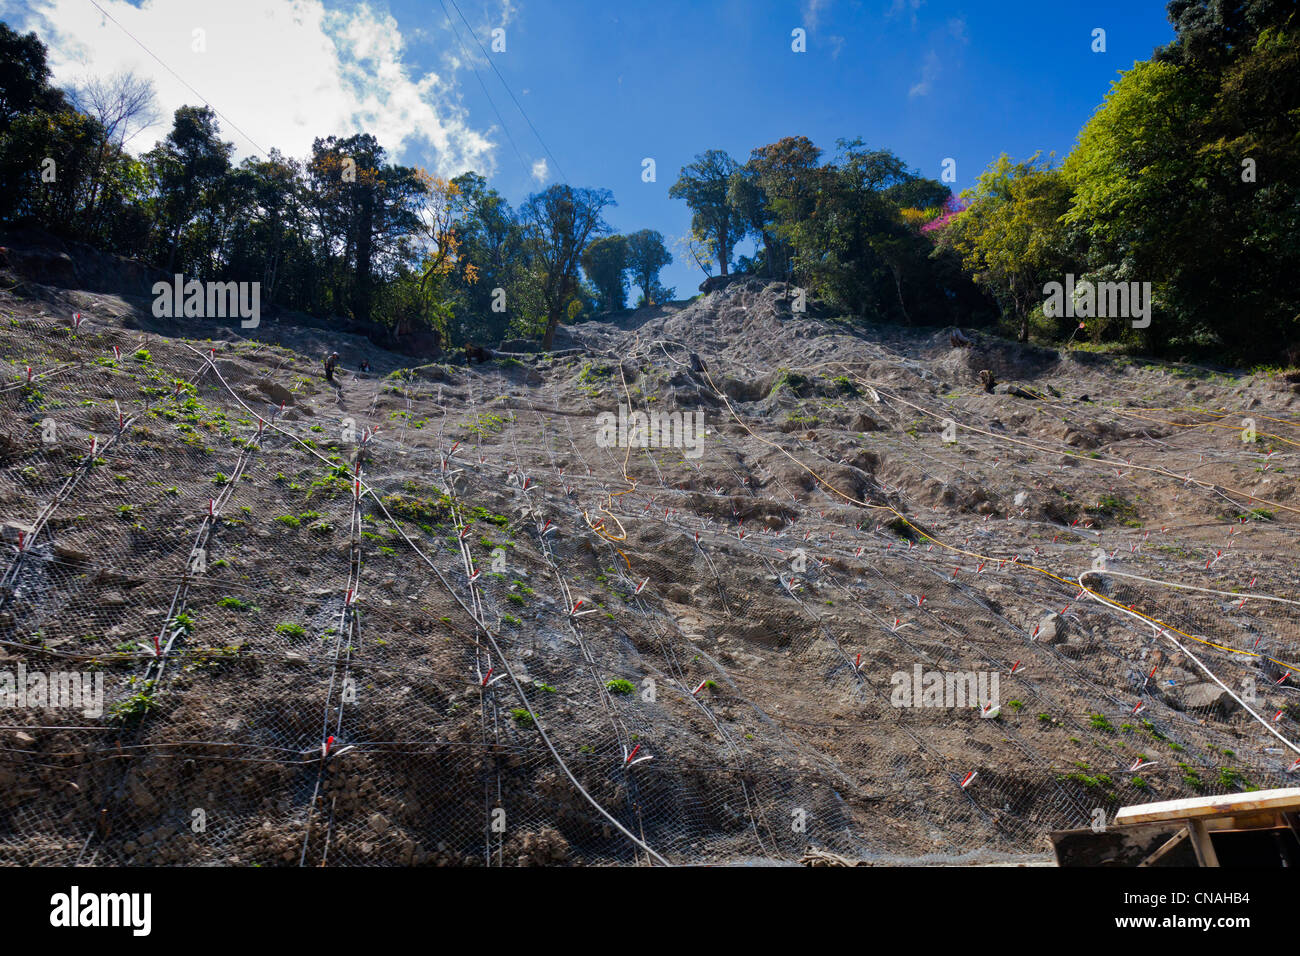 Site of landslide being repaired on Route 21 Yushan Landscape Route in Taiwan. JMH5909 - Stock Image